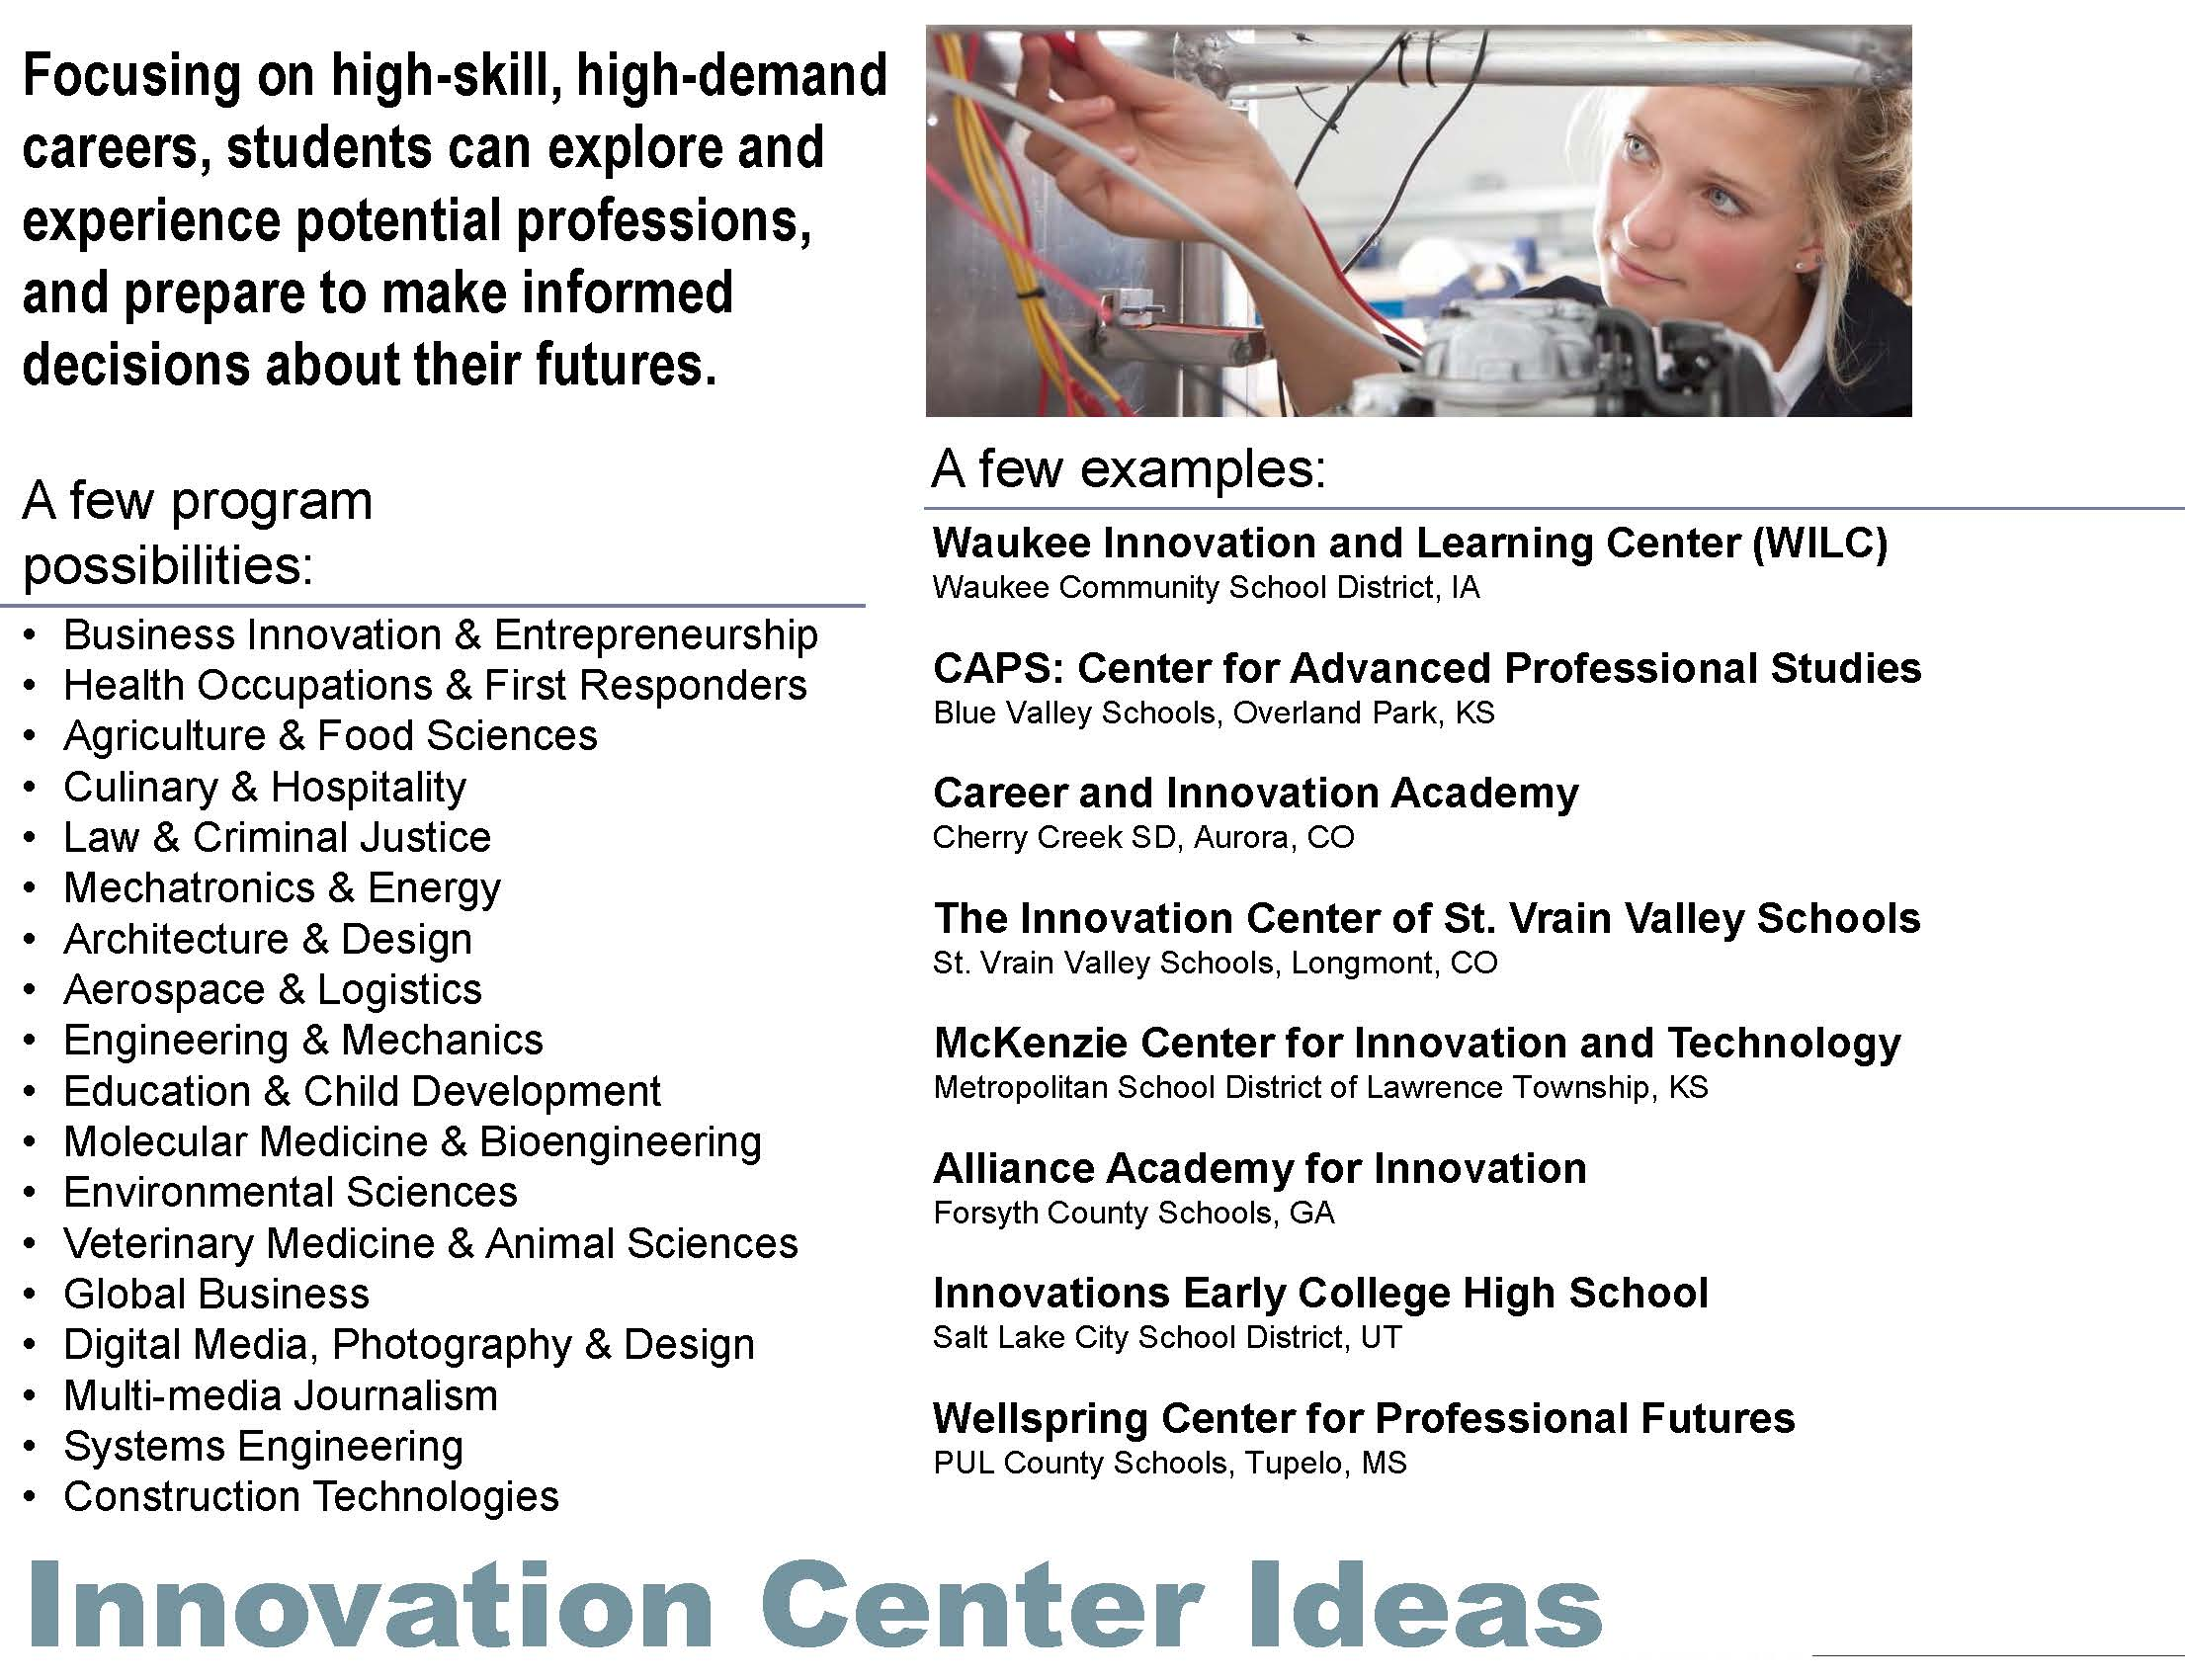 Innovation Center Program Ideas  This graphic lists program options for the Innovation Center as well as a list of school districts across the country who have an innovation center.   Click on the graphic to view full image.